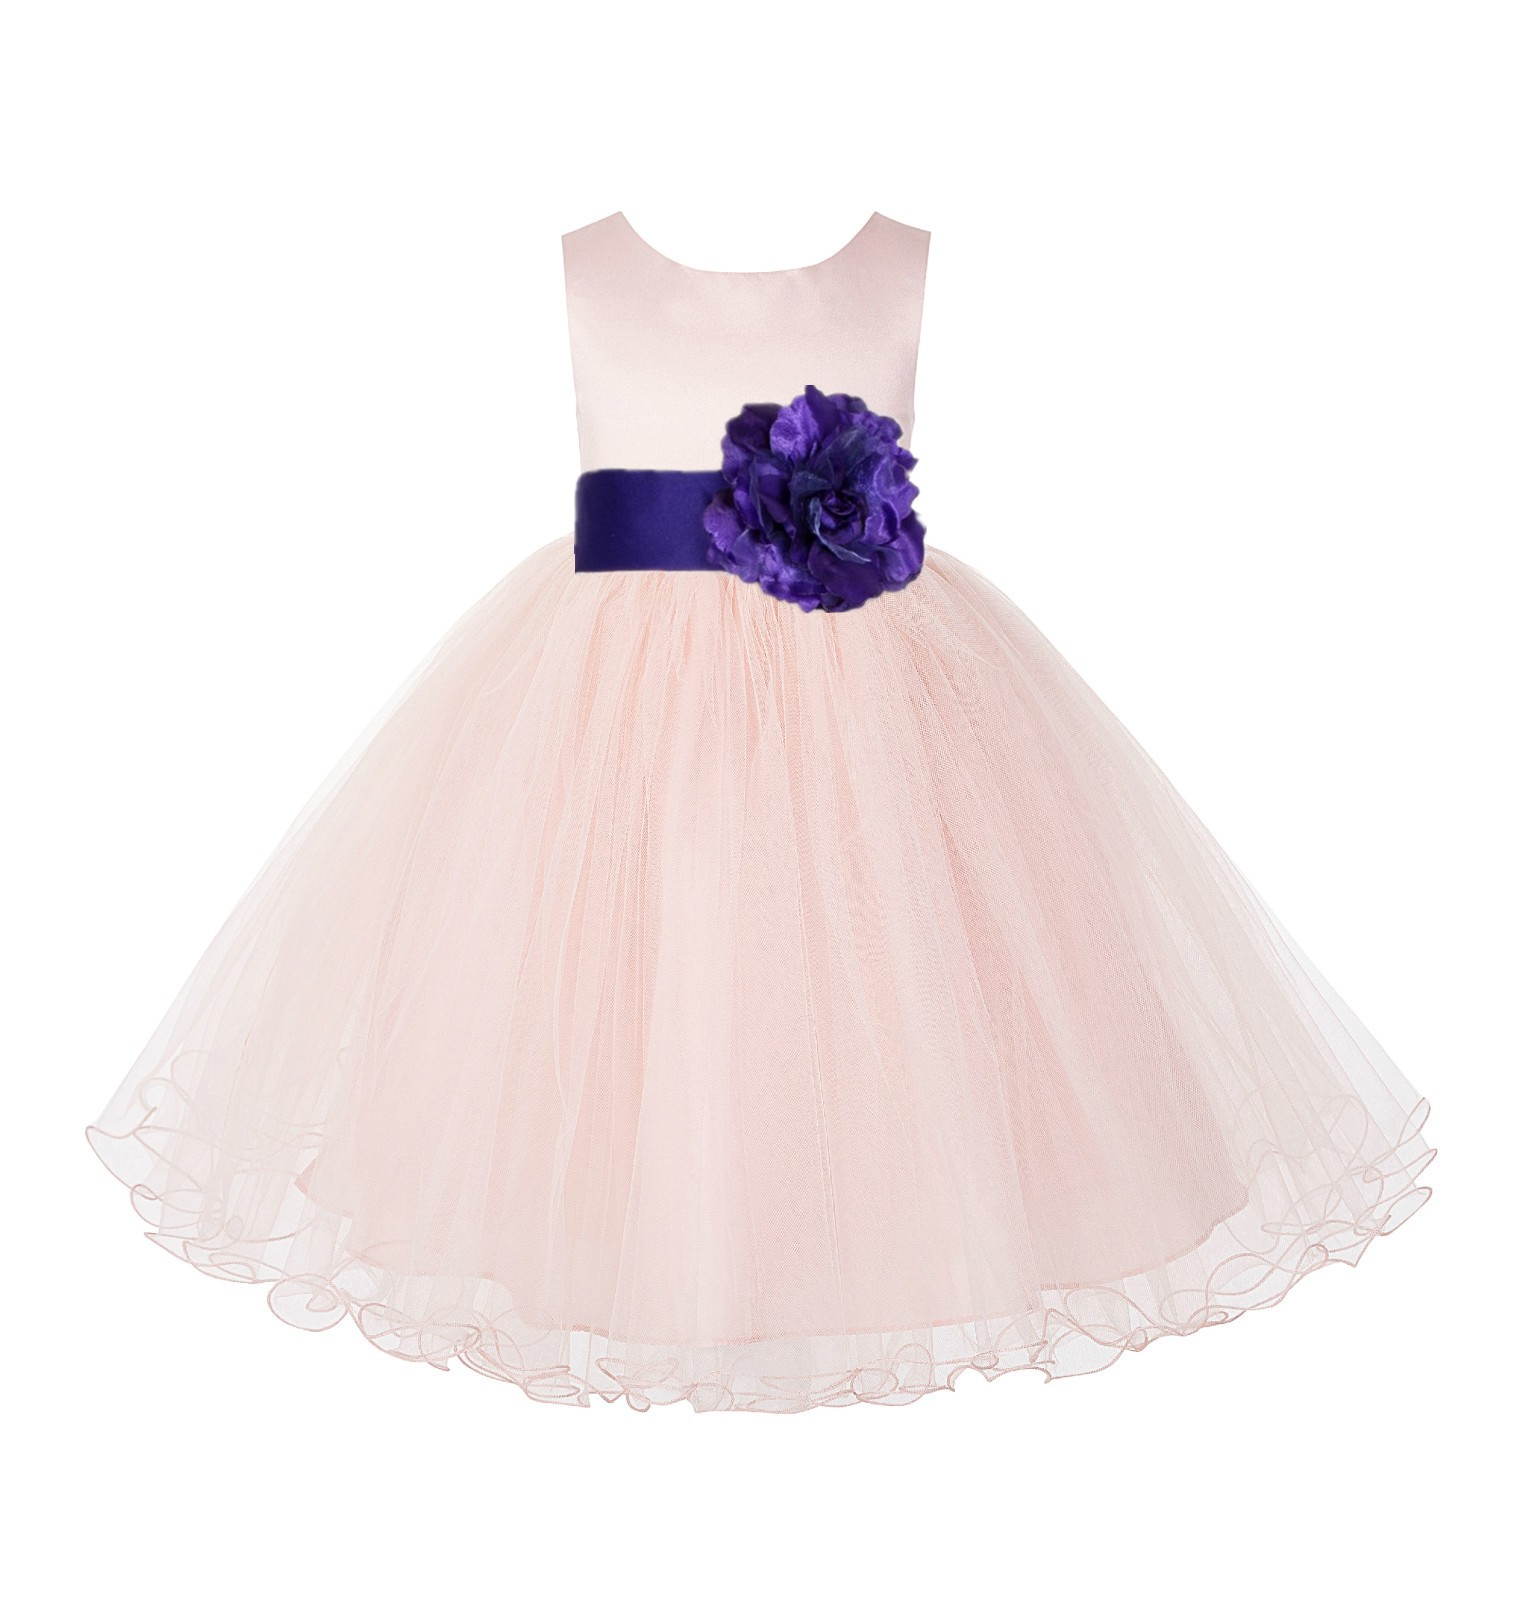 Blush Pink / Cadbury Tulle Rattail Edge Flower Girl Dress Pageant Recital 829S